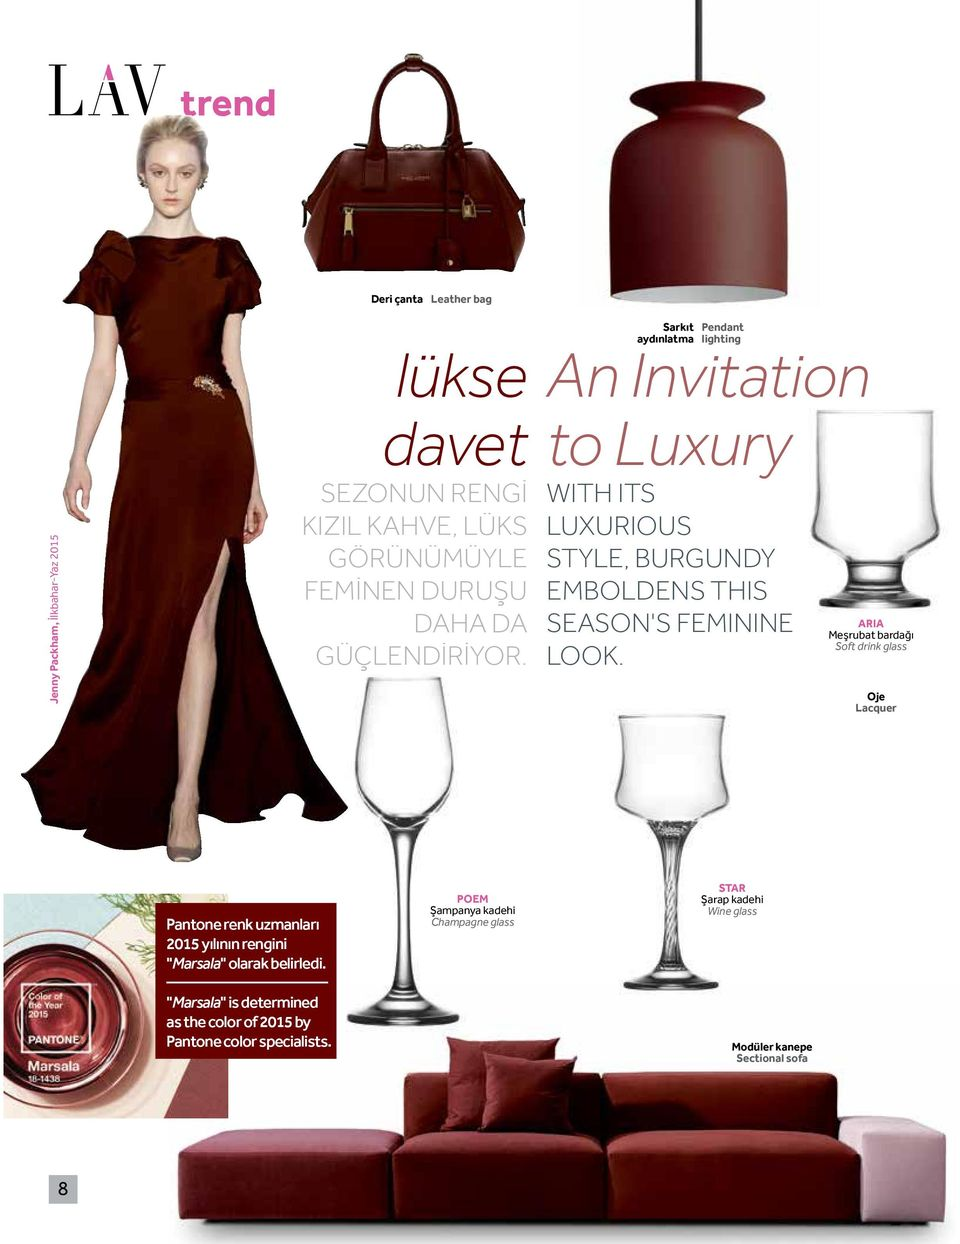 WITH ITS LUXURIOUS STYLE, BURGUNDY EMBOLDENS THIS SEASON'S FEMININE LOOK.